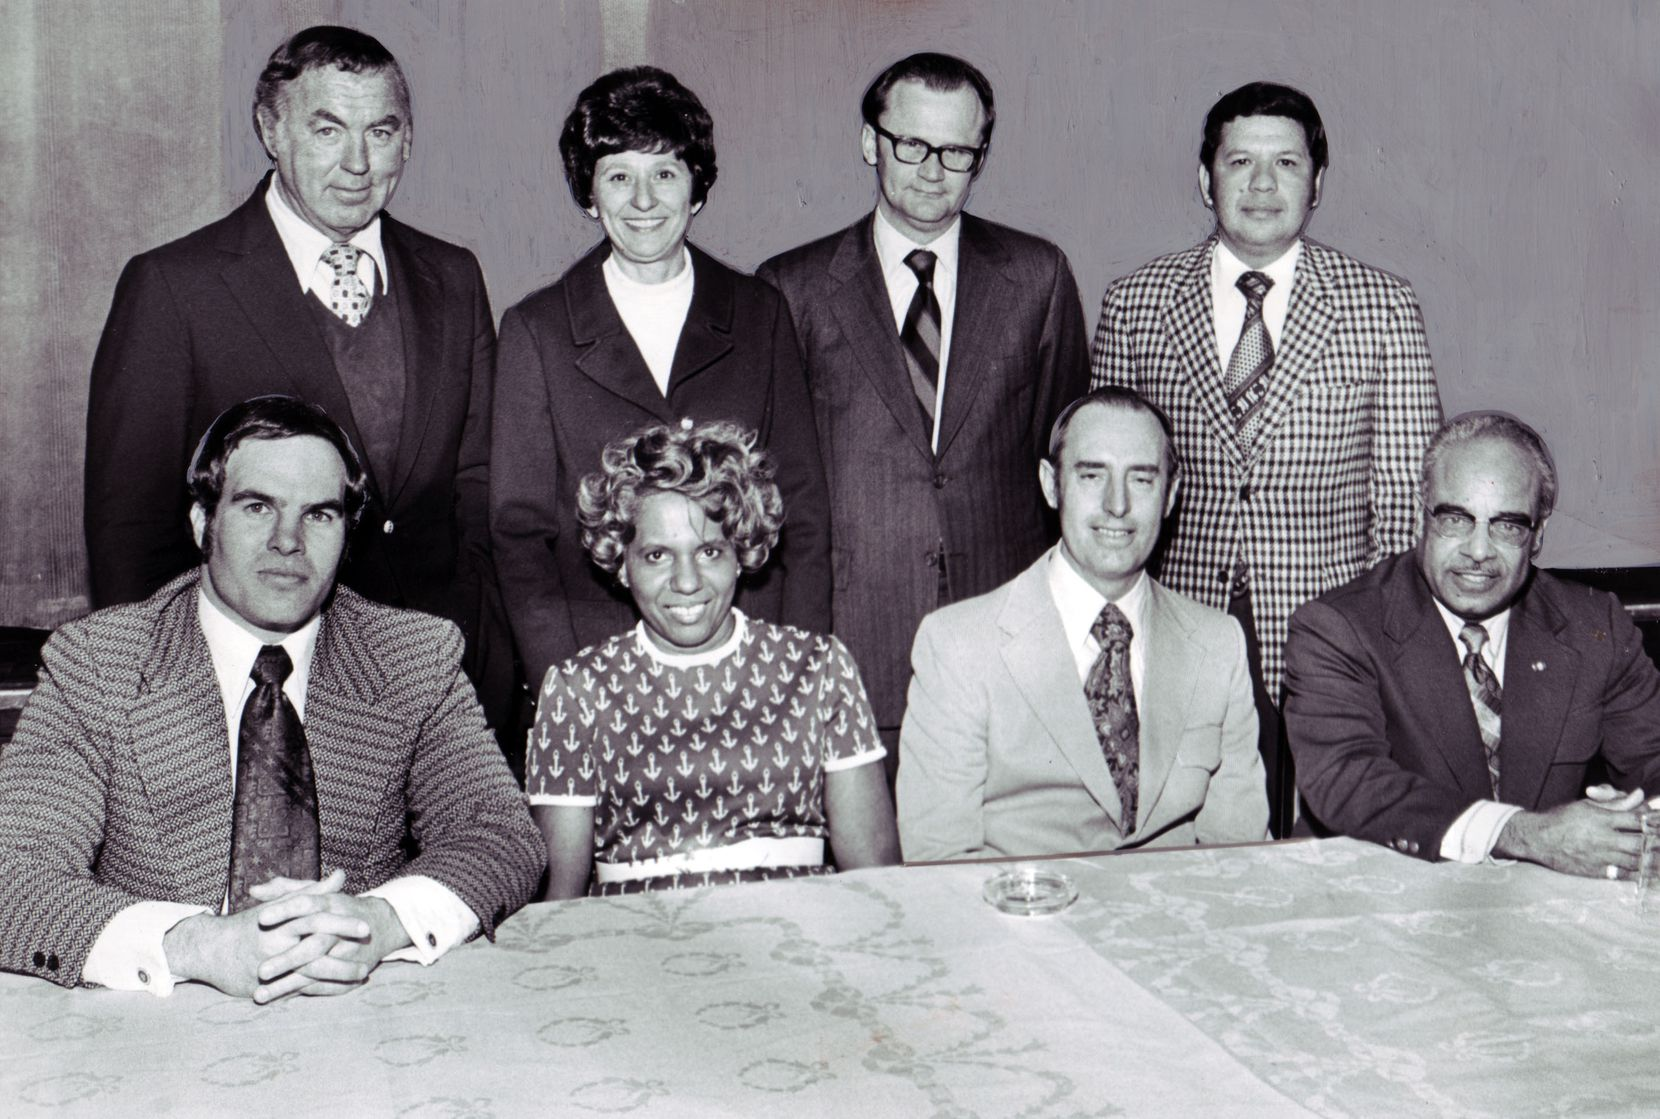 Citizens Charter Association candidates for City Council: (seated) Charles Terrell, Lucy Patterson, L. A. Murr, and George Allen; and (standing) Fred Zeder, Adlene Harrison, Russell Smith and Pedro Aguirre as seen in a February 25, 1973 Dallas Morning News article. Dallas News Staff Photo by Jack Beers.